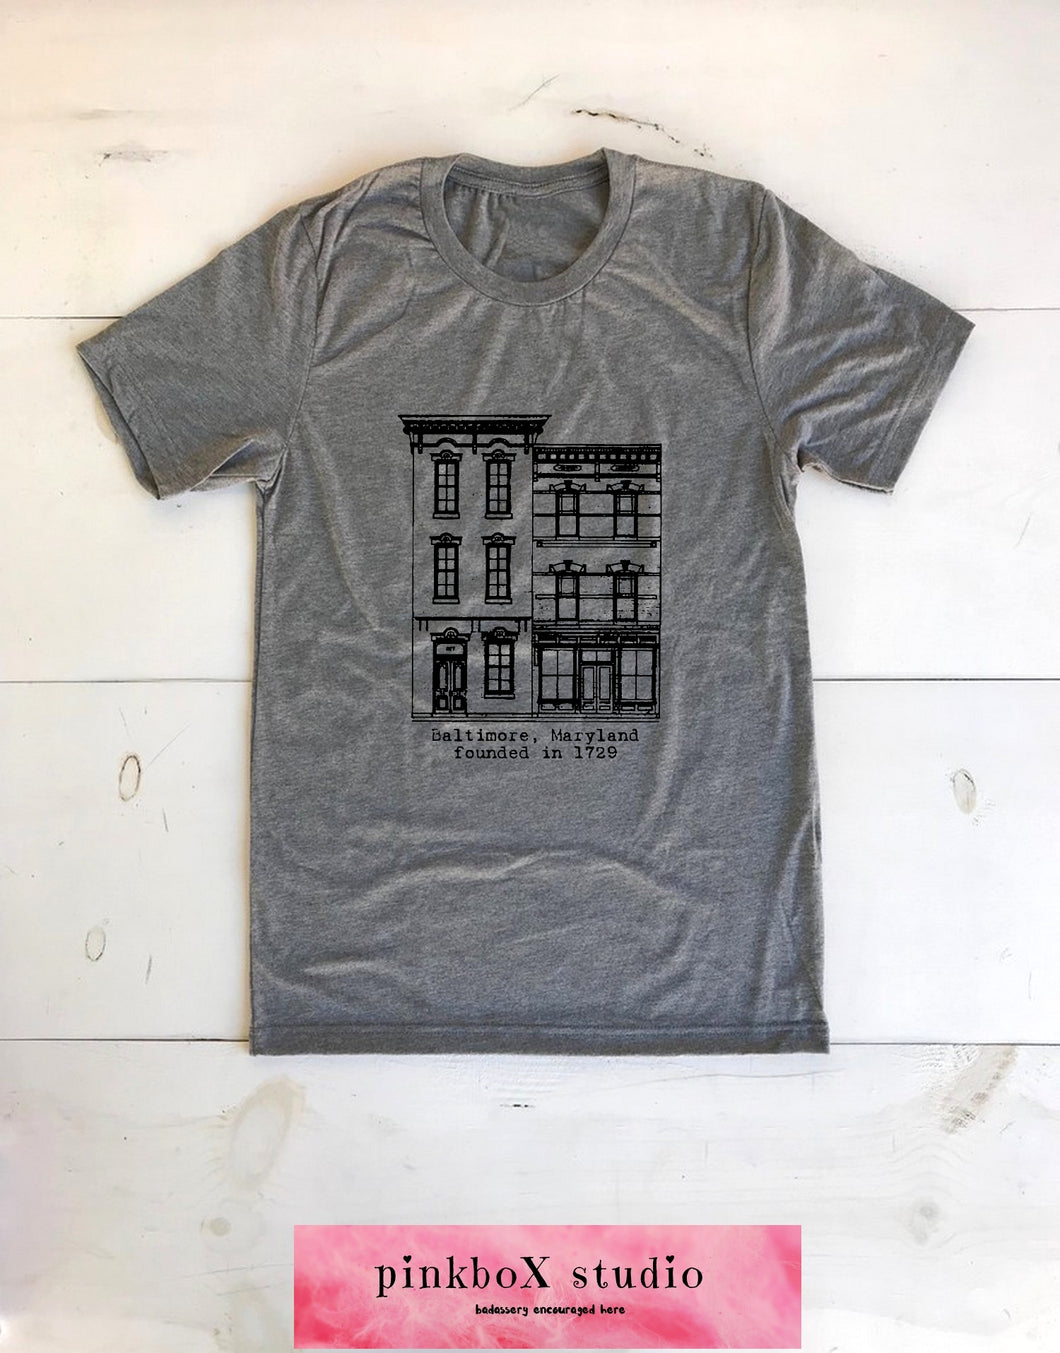 ROWHOUSE Baltimore, MD. printed on Unisex Crew neck triblend Gray T-shirt